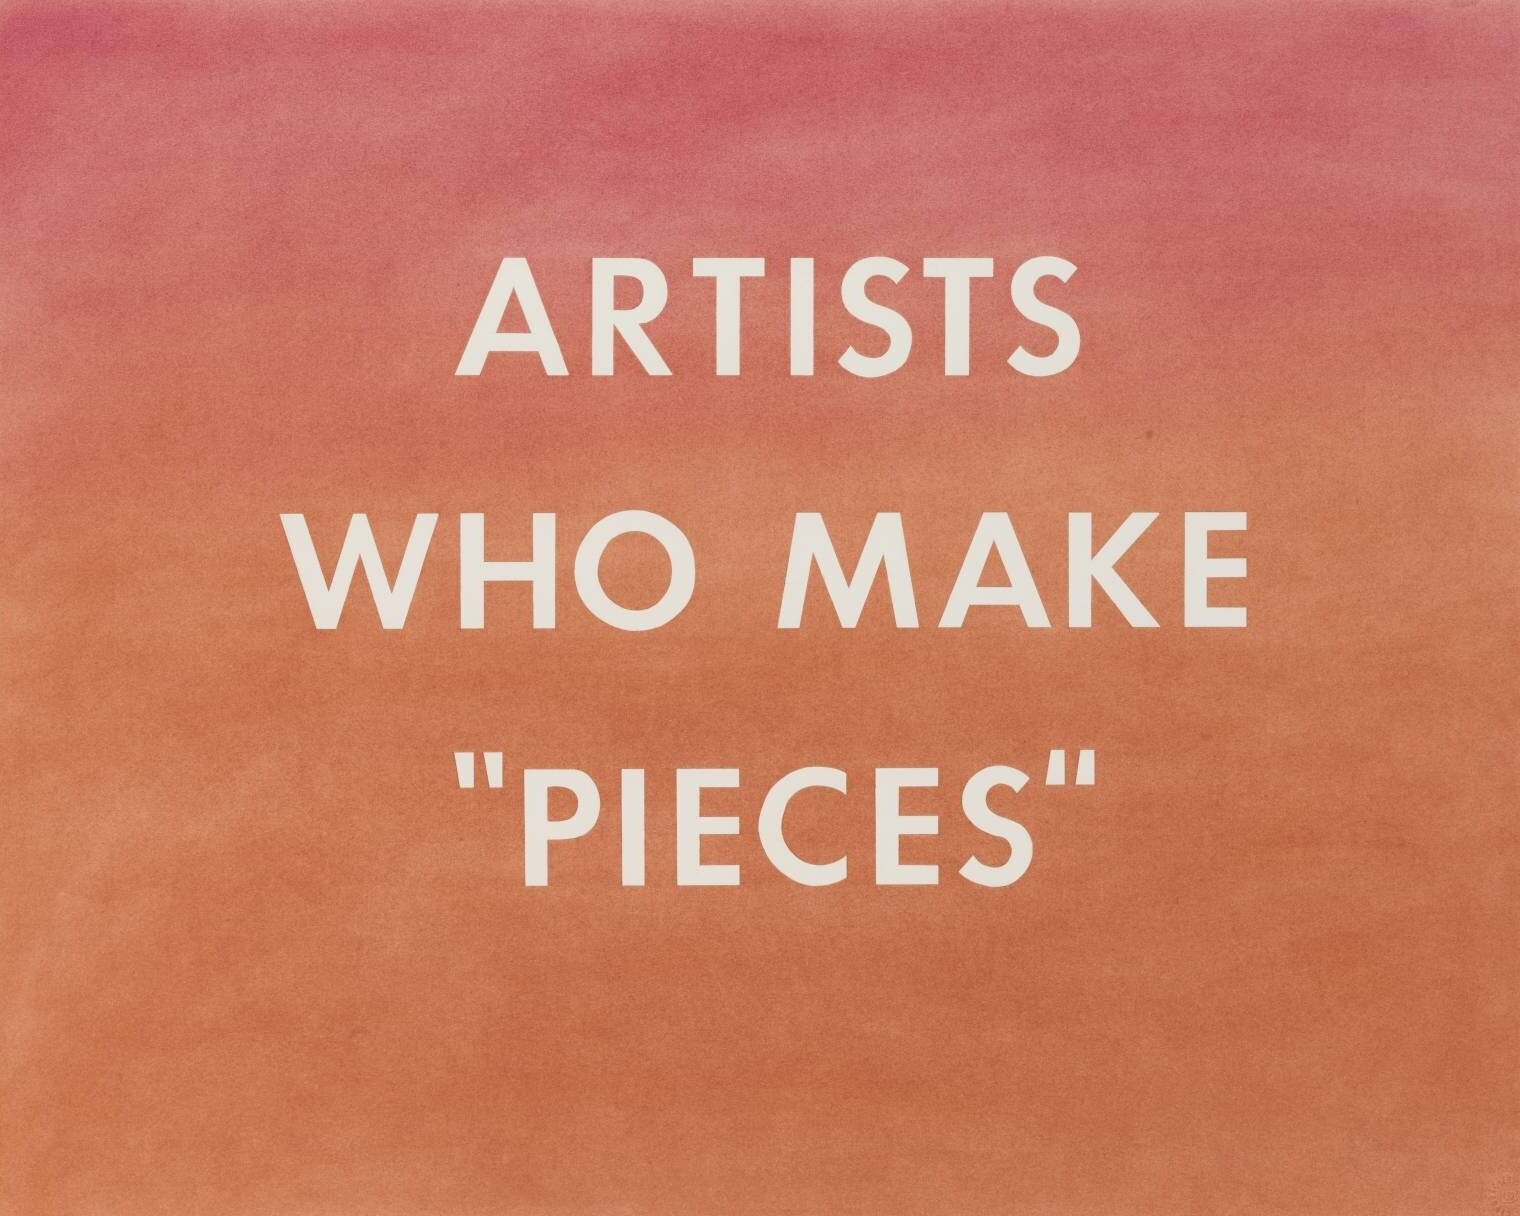 ed ruscha - Exhibition at the tate modern